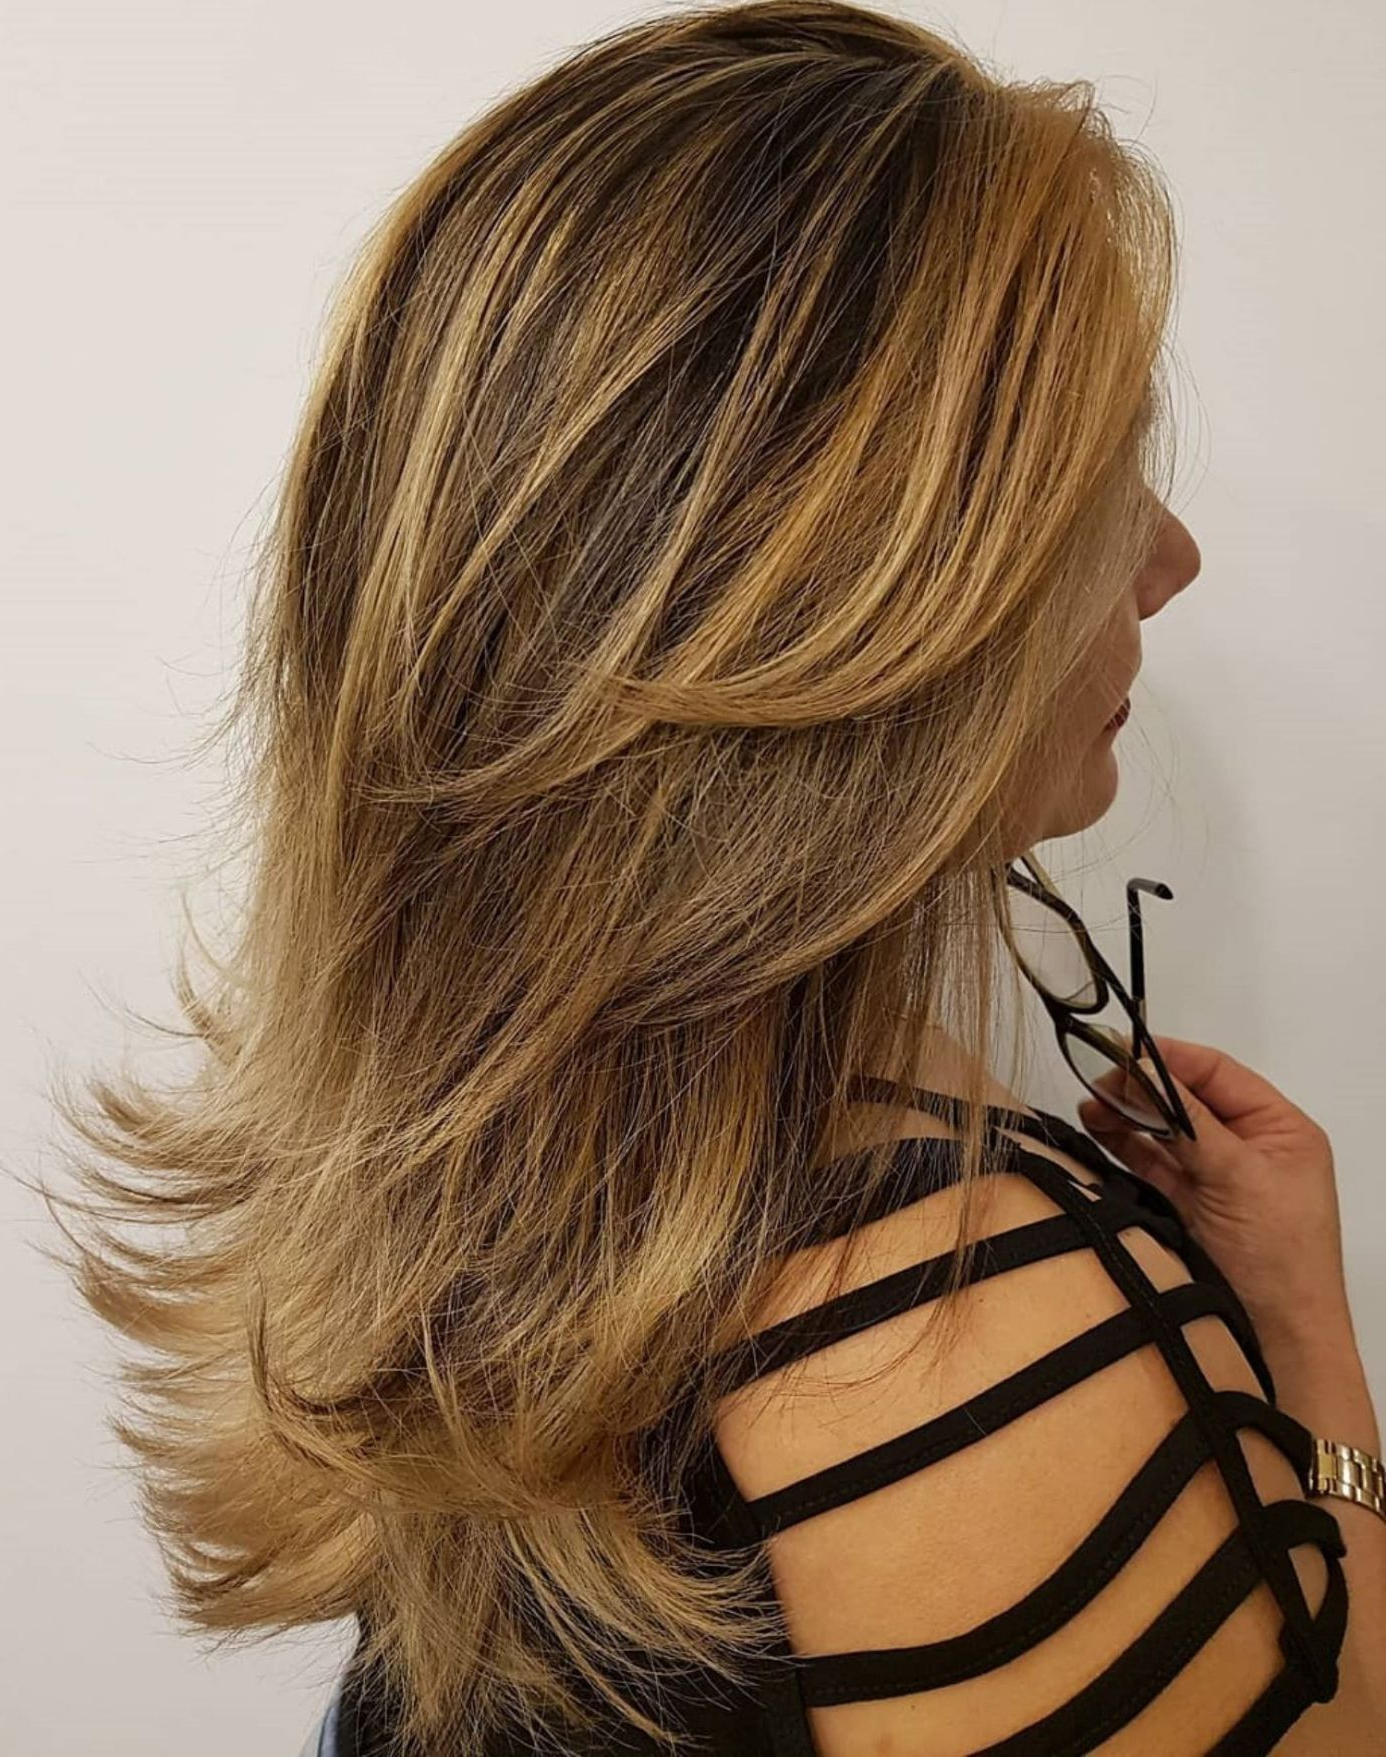 40 Long Hairstyles And Haircuts For Fine Hair In 2019 With Well Liked Lovely Golden Blonde Haircuts With Swoopy Layers (View 6 of 20)